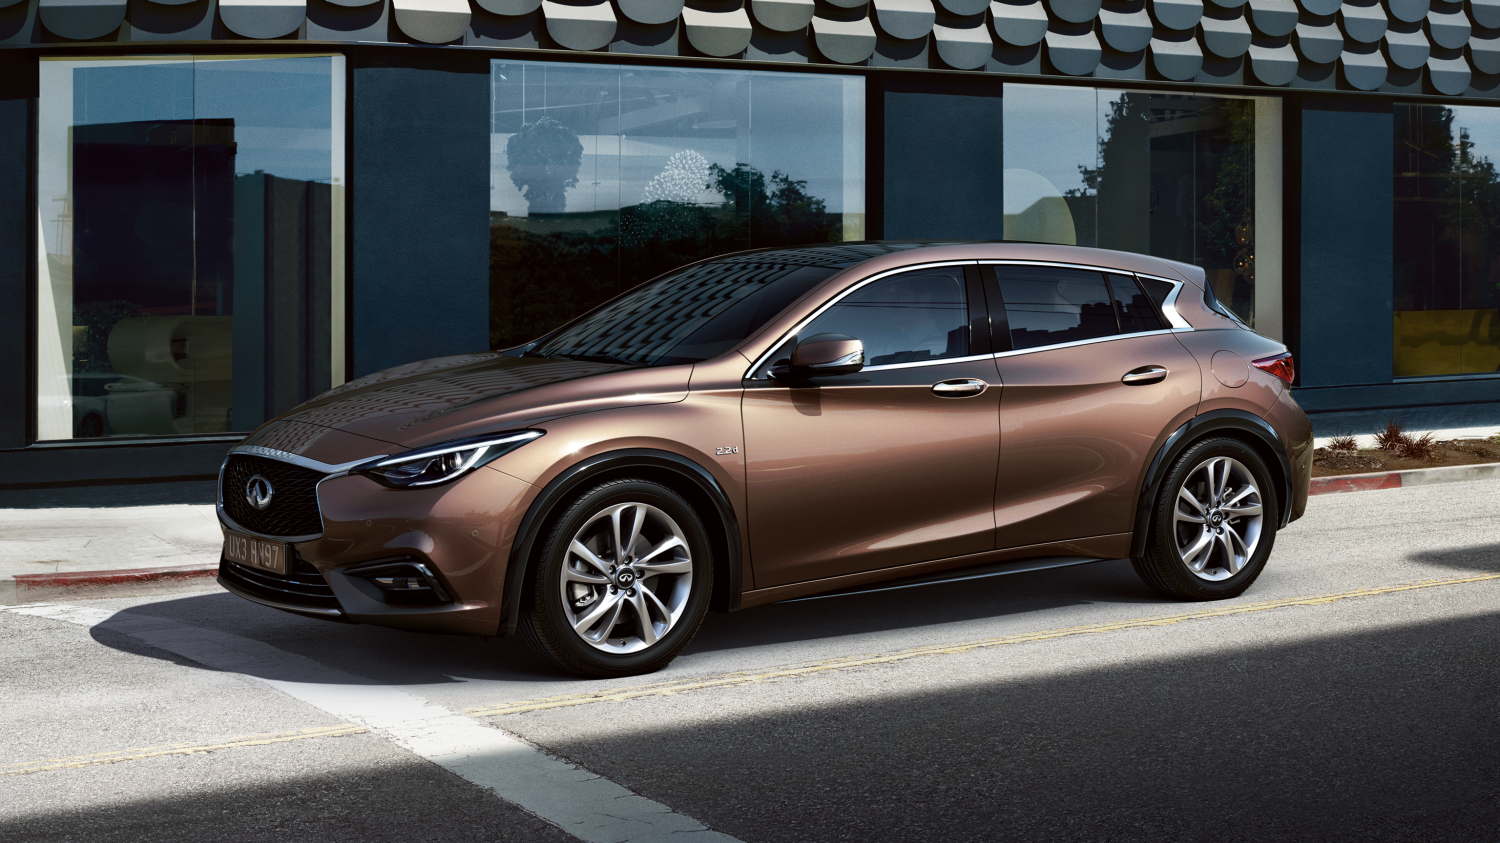 Infiniti Q30 | Soon to be launched, South Africa